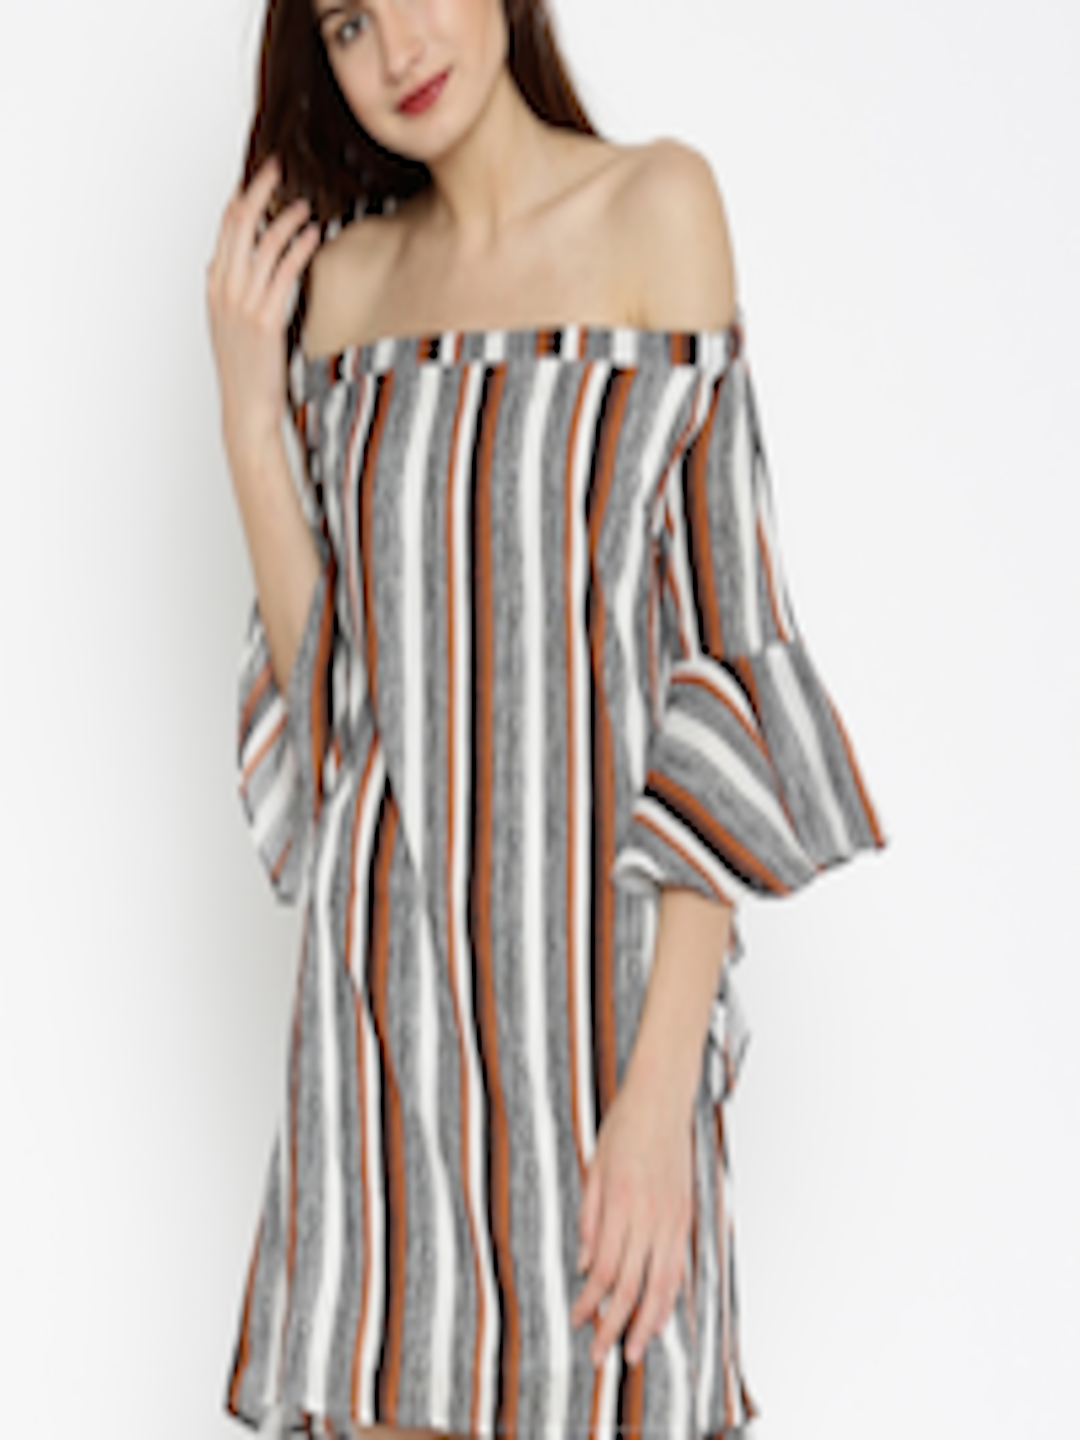 df428310e3f0 Buy SASSAFRAS Women Brown   White Striped Off Shoulder Shift Dress With A  Cut Out Back - Dresses for Women 1774664